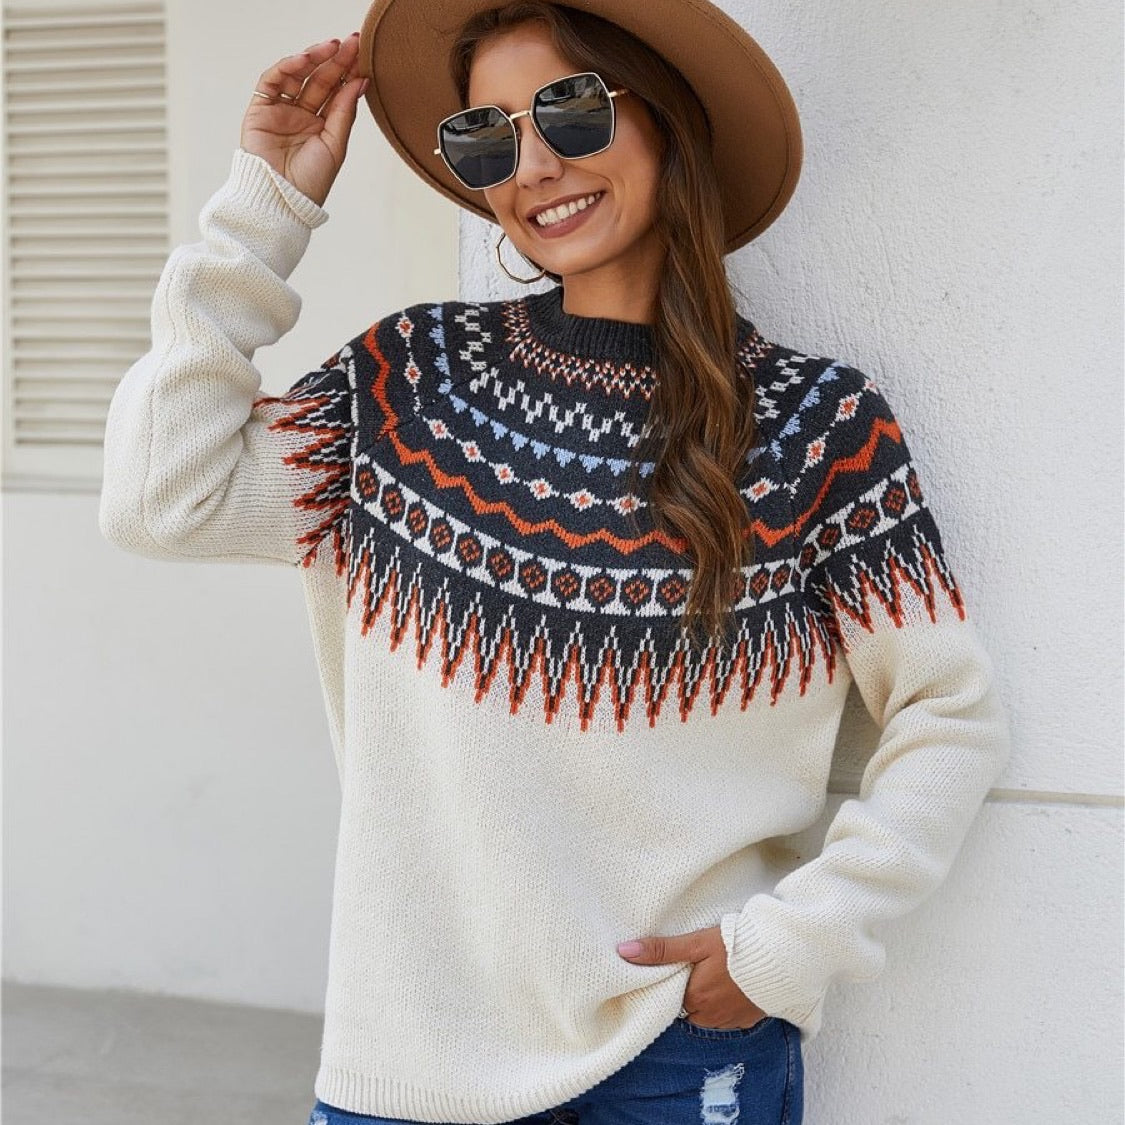 Vintage Ethnic Sweater - Cila Clothing